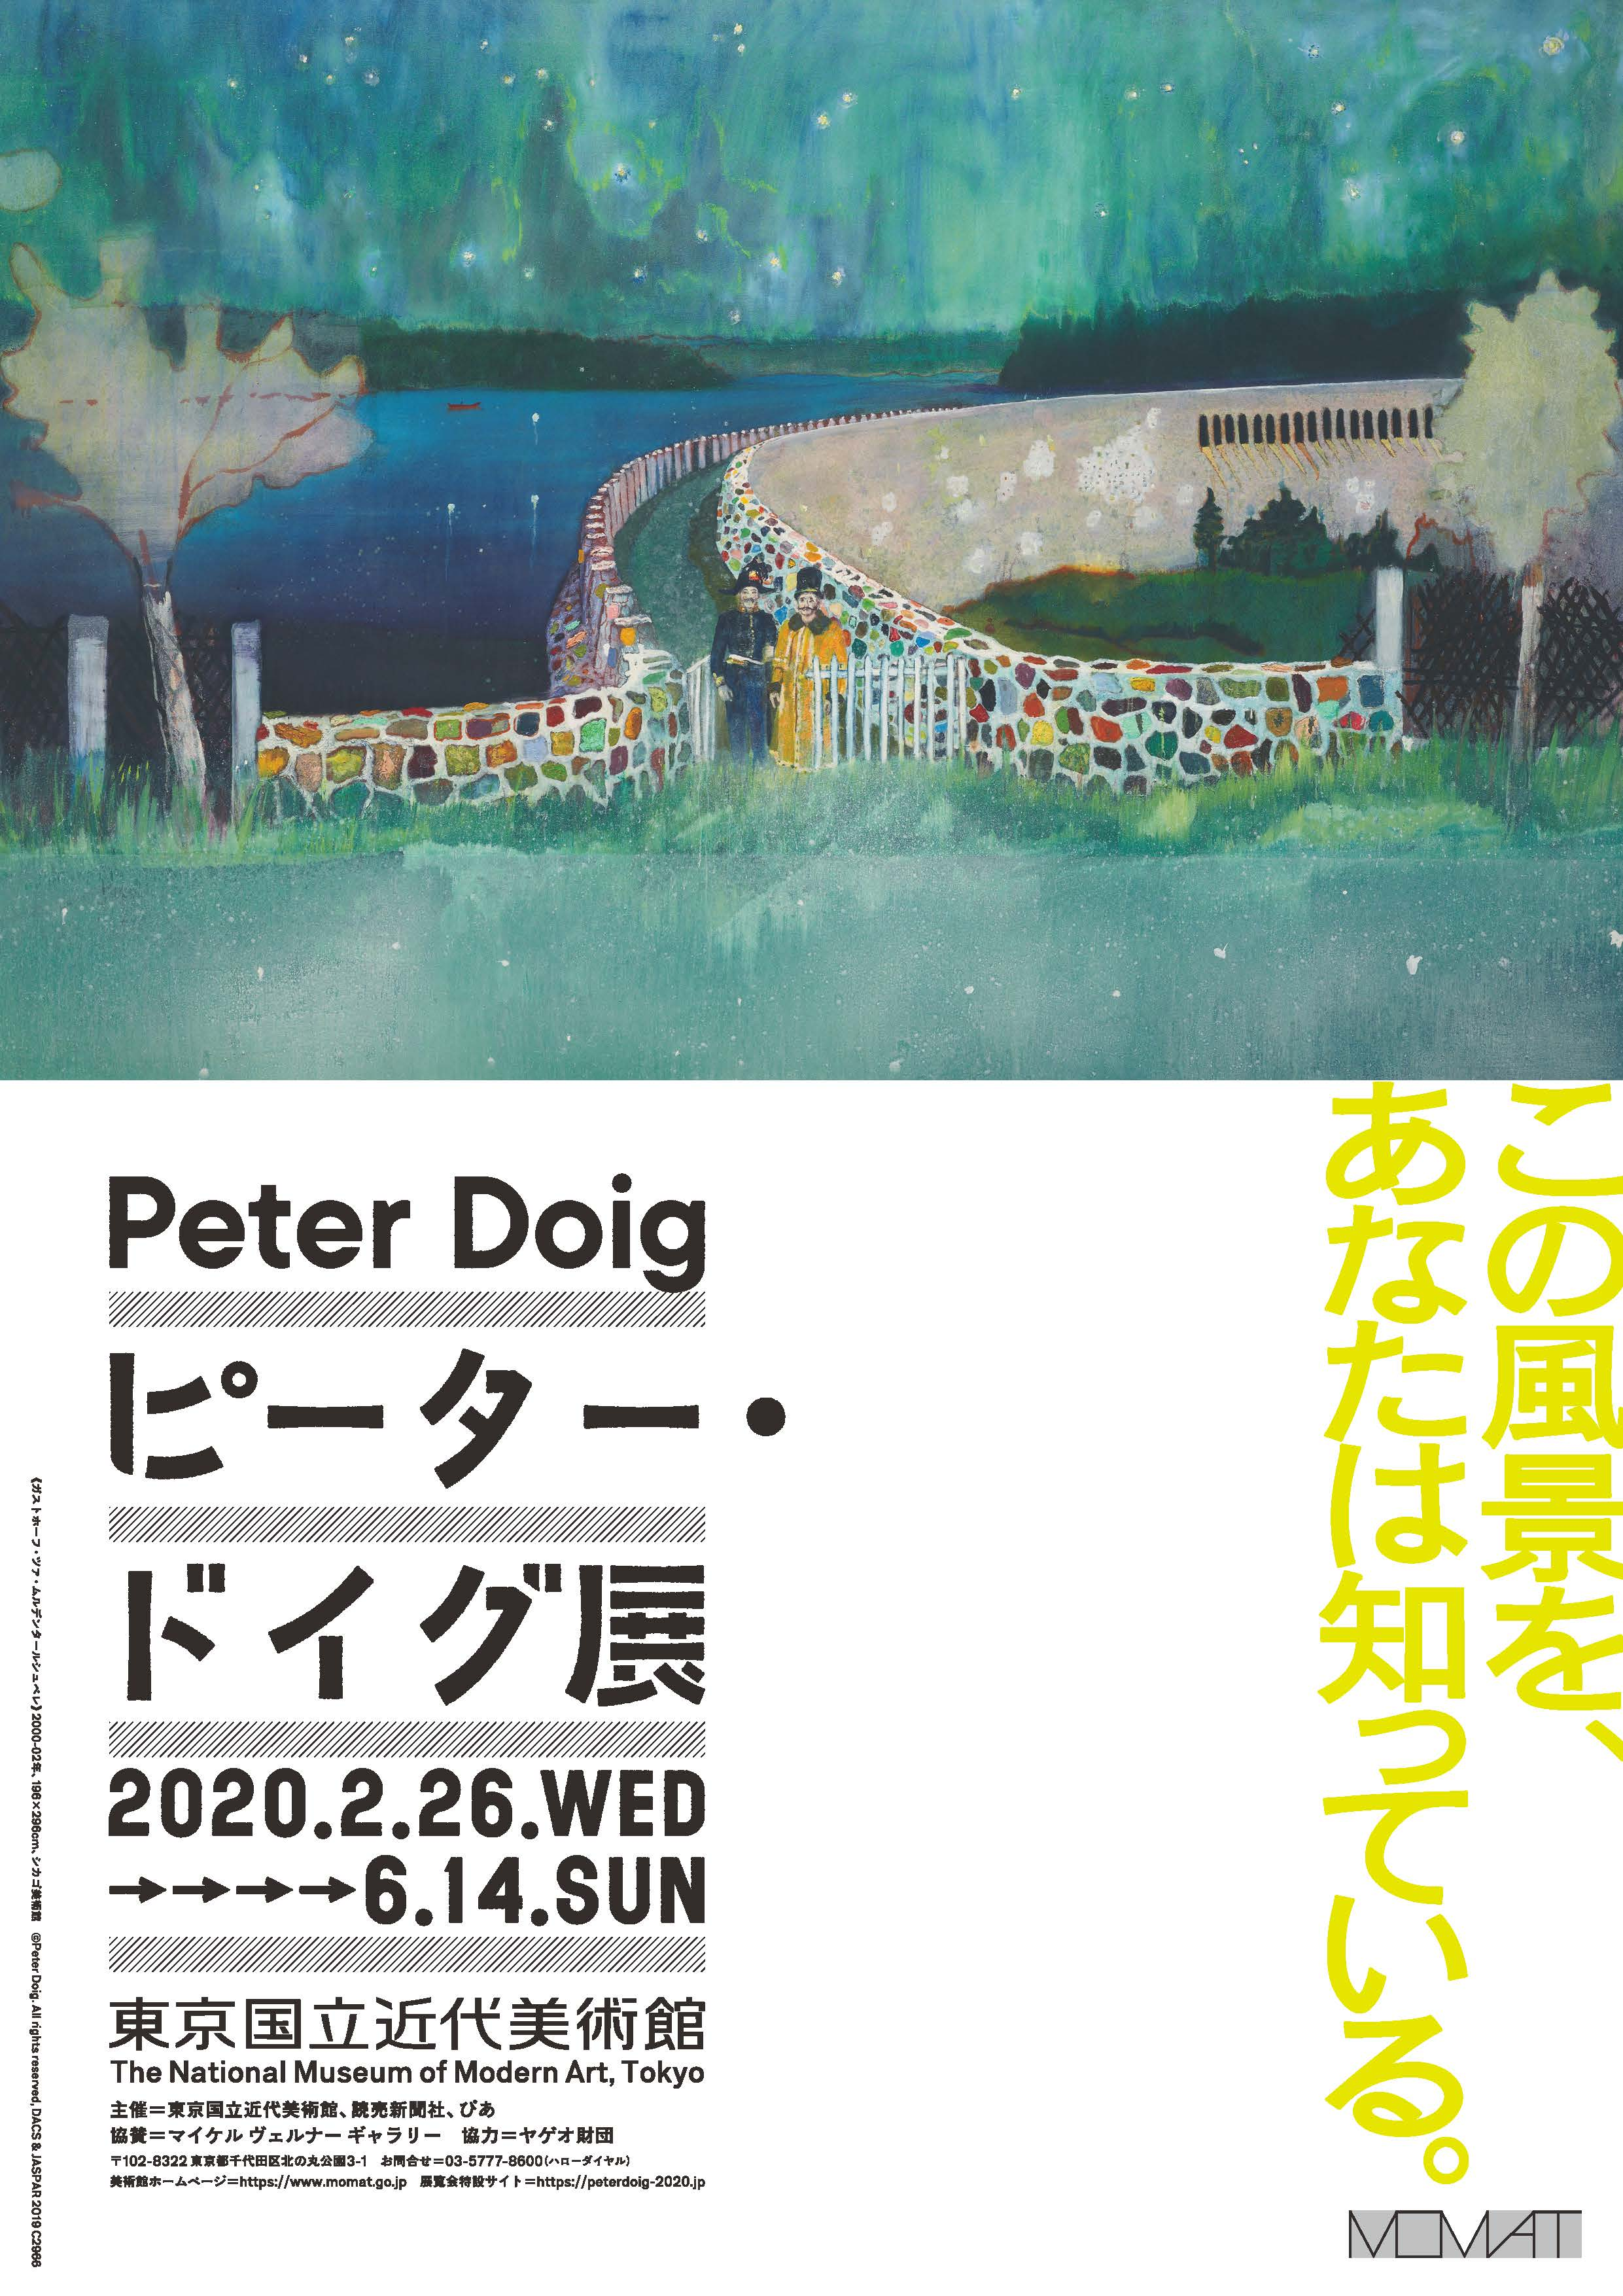 PETER DOIG EXHIBITION